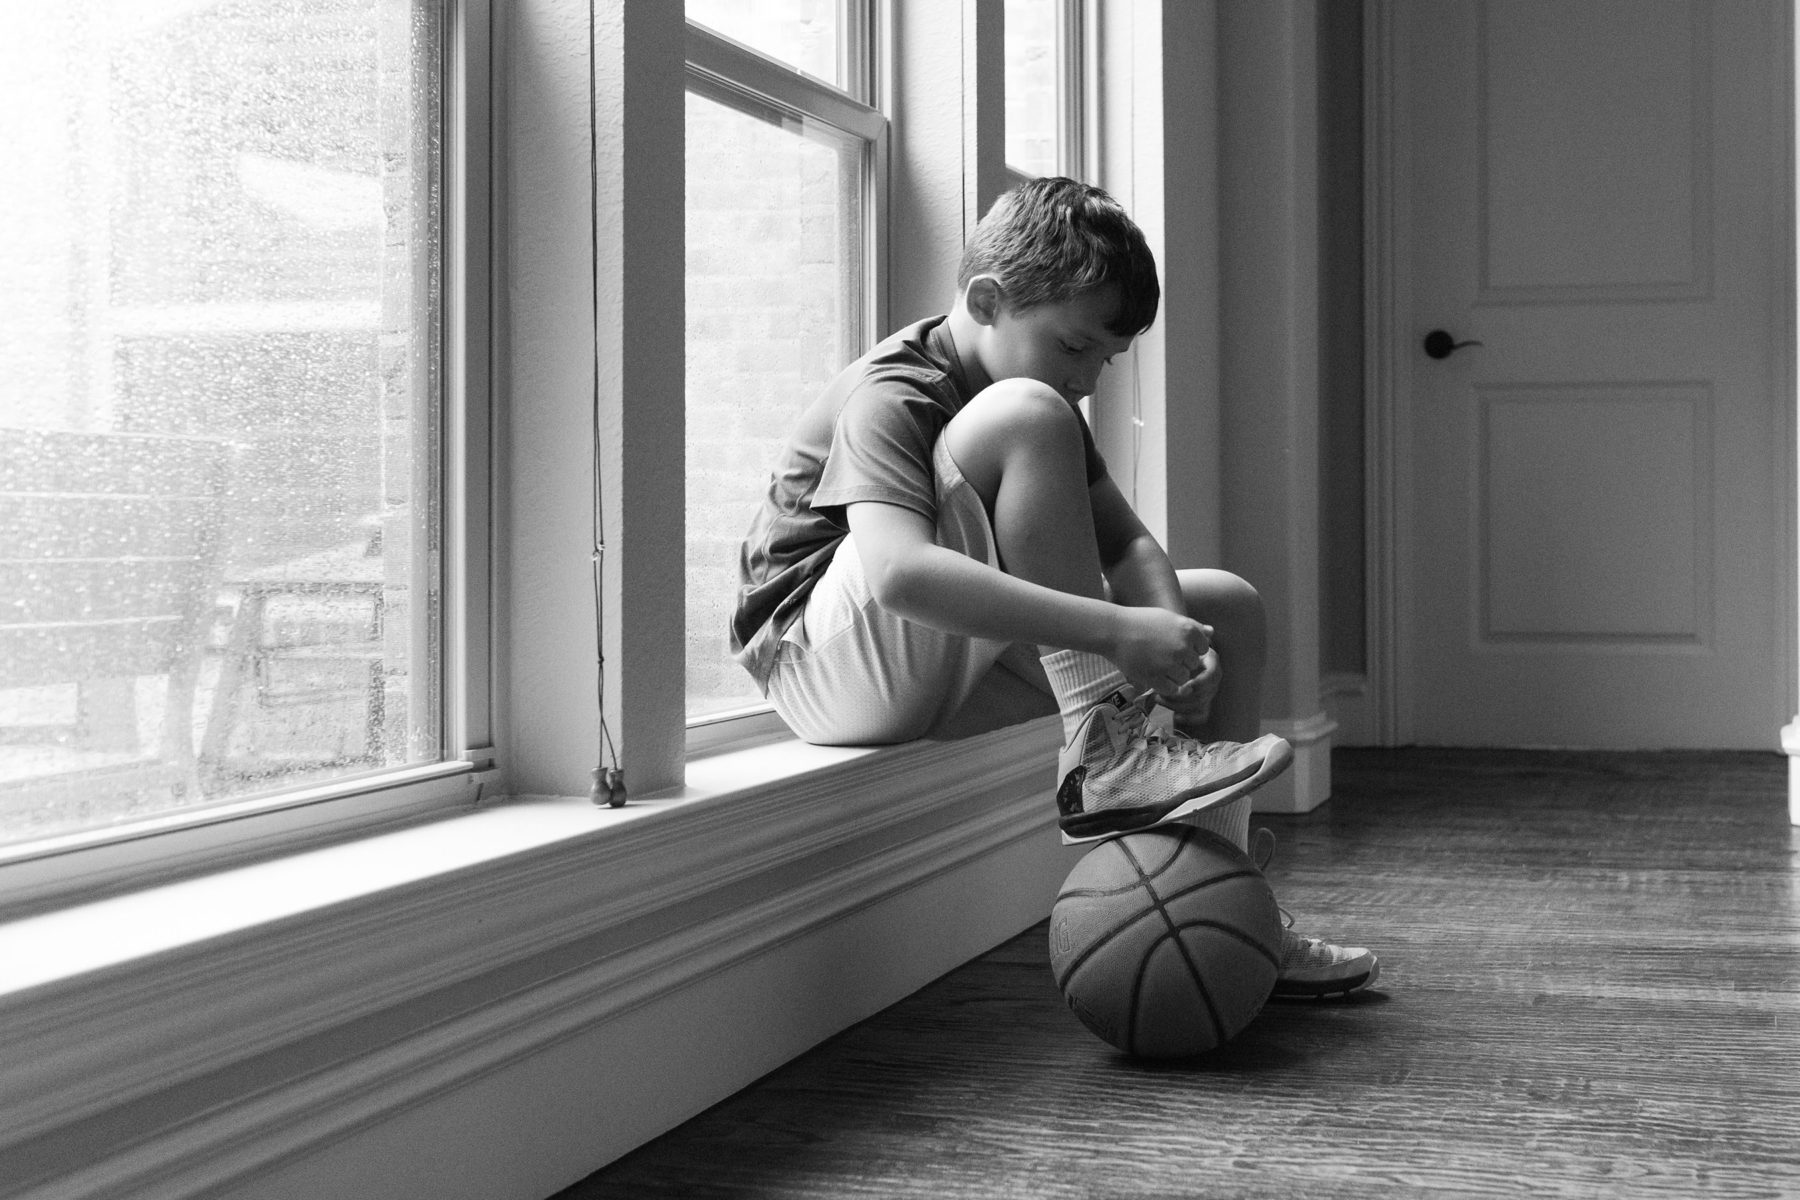 Boy tying basketball shoes